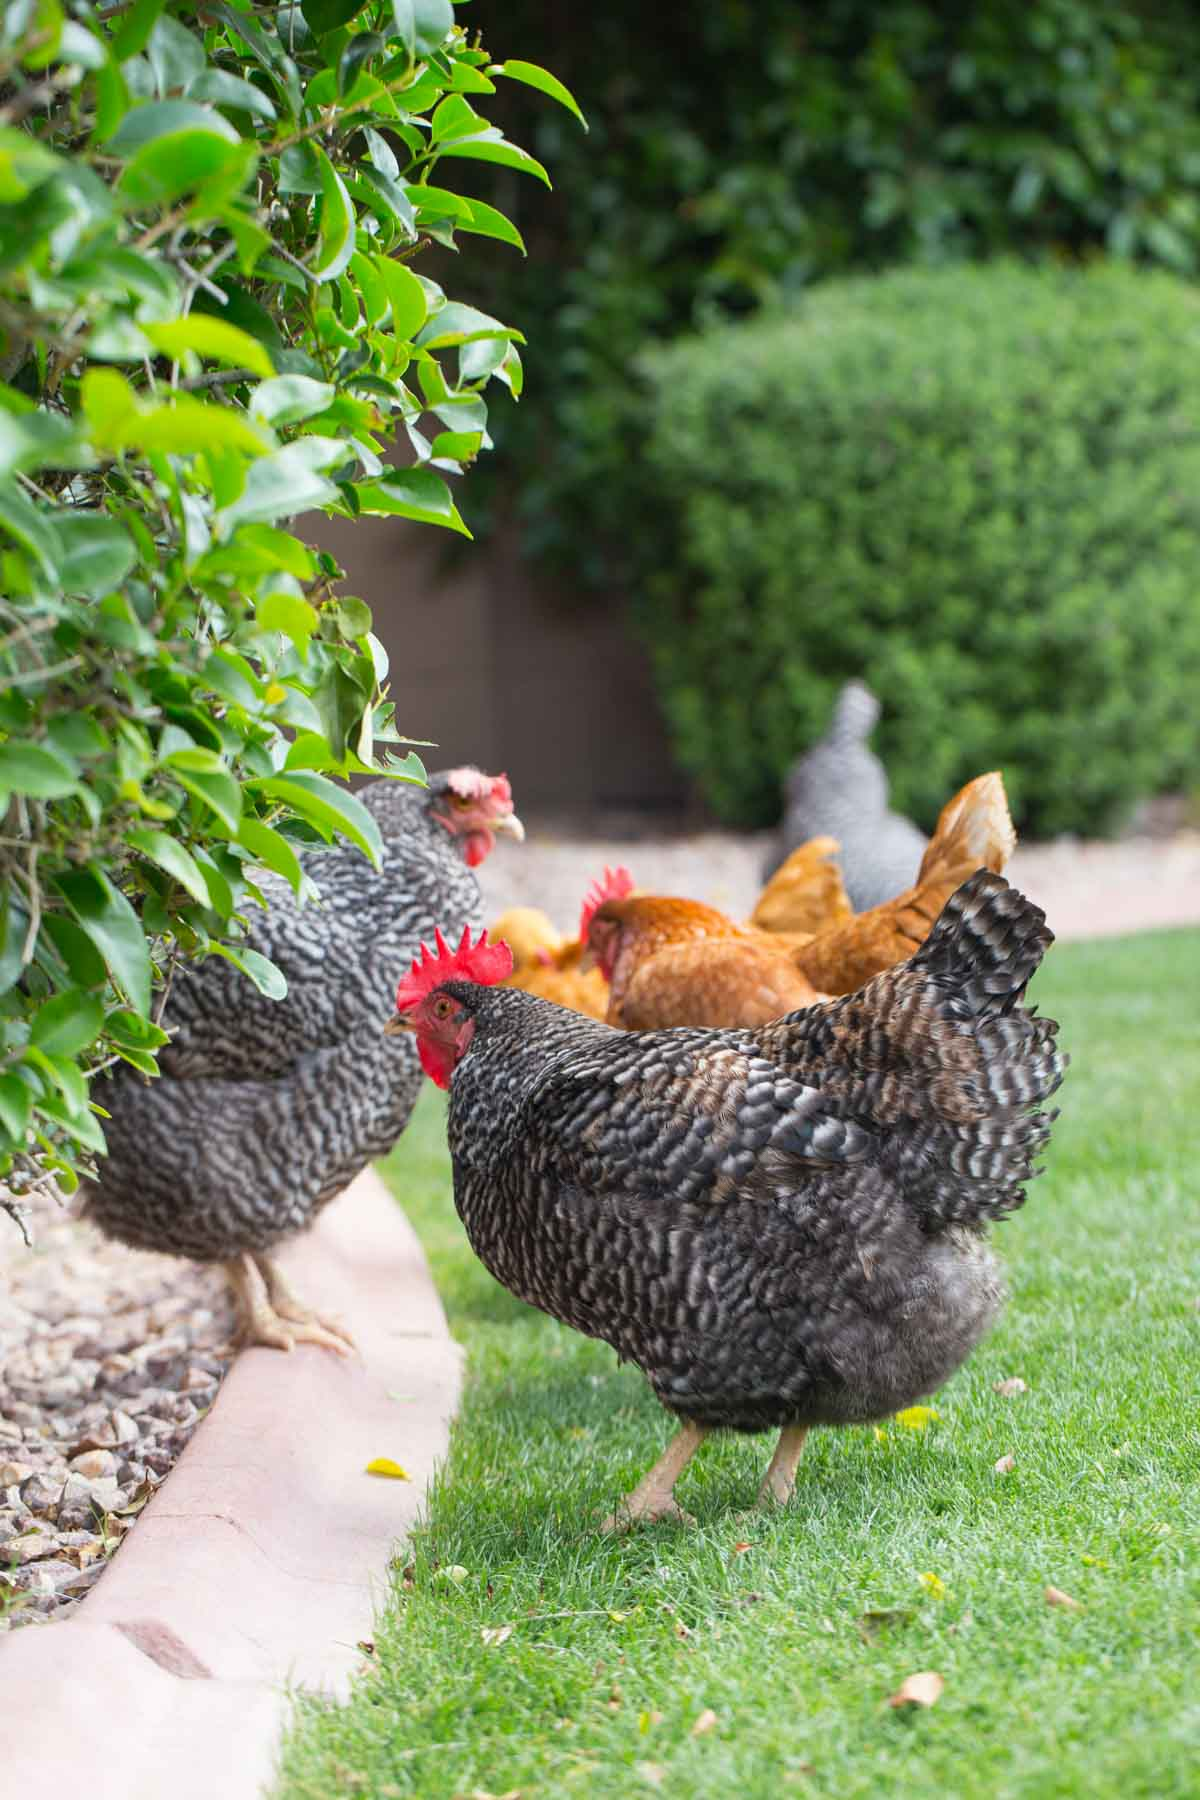 Flock of backyard chickens